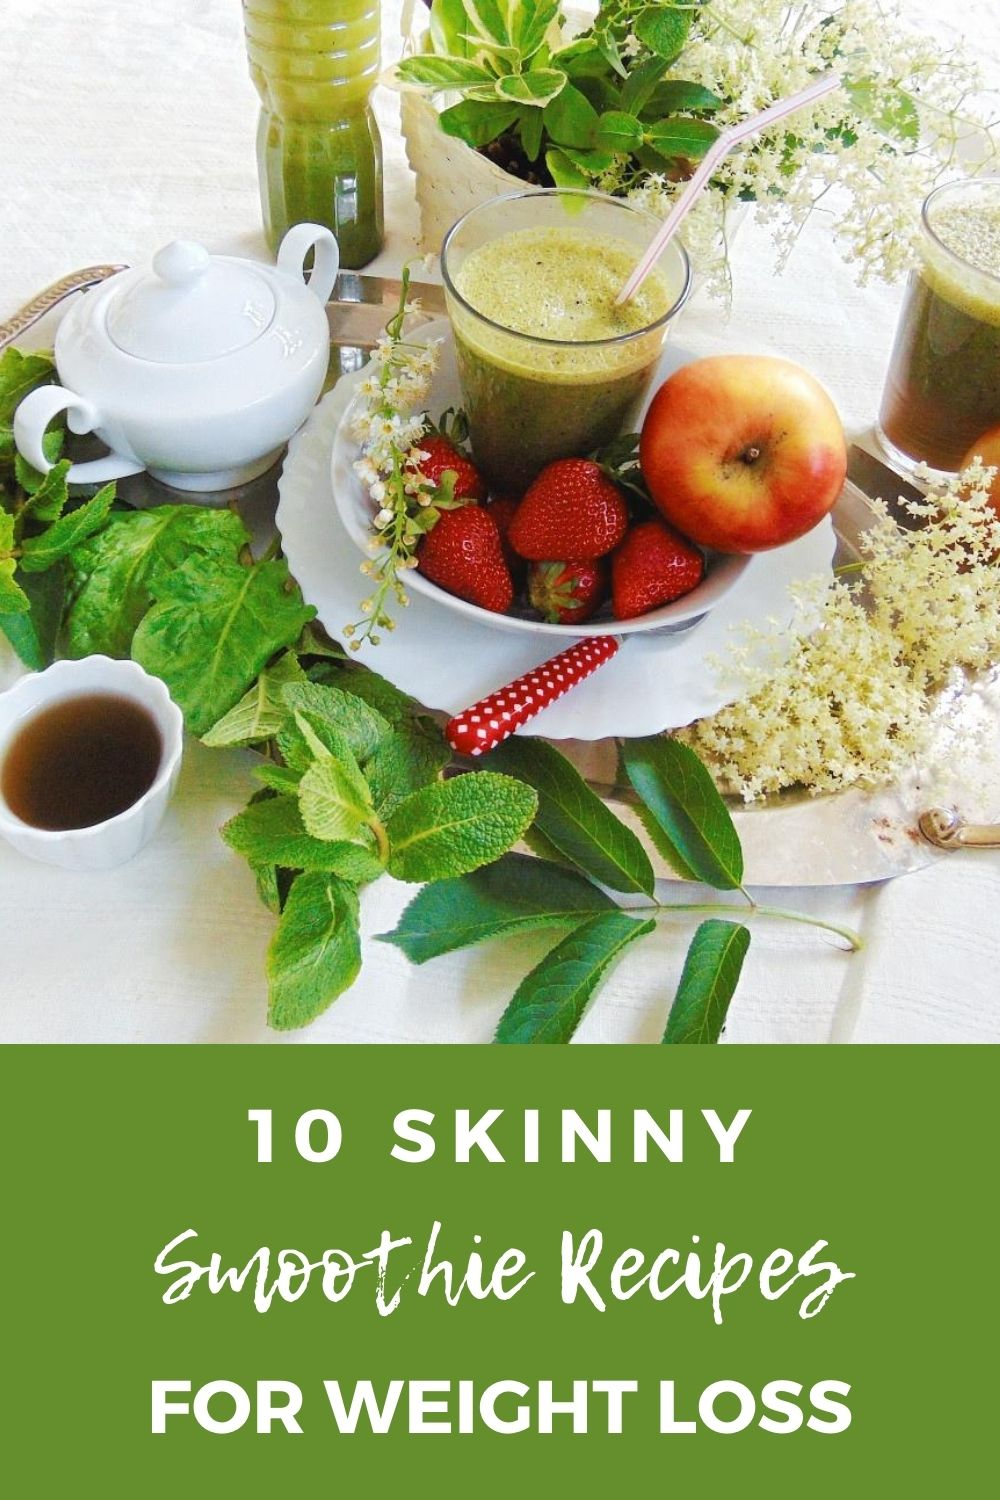 10 SKINNY SMOOTHIE RECIPES FOR WEIGHT LOSS ZDROWE SMOOTHIE